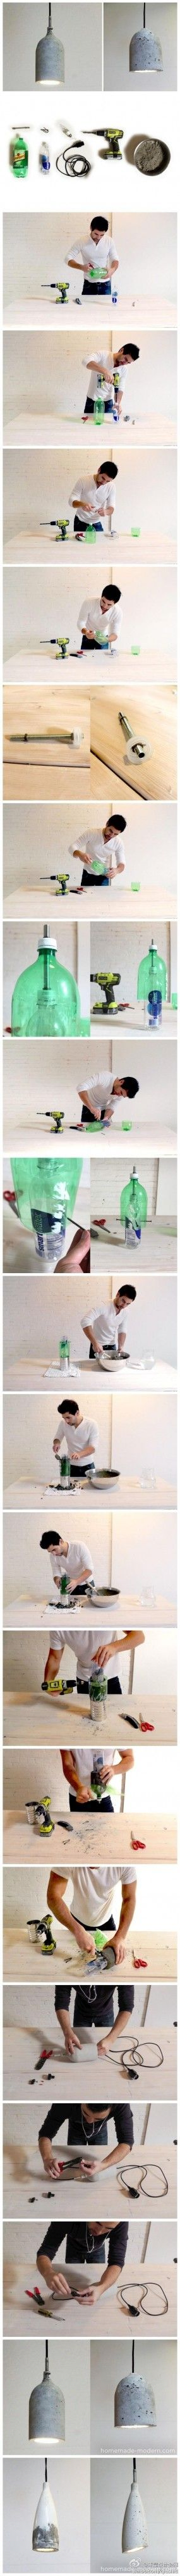 DIY Cement Pendant Light  --  soda and water bottles for molds and a lamp kit for wiring  --  like the one with the angle bottom best